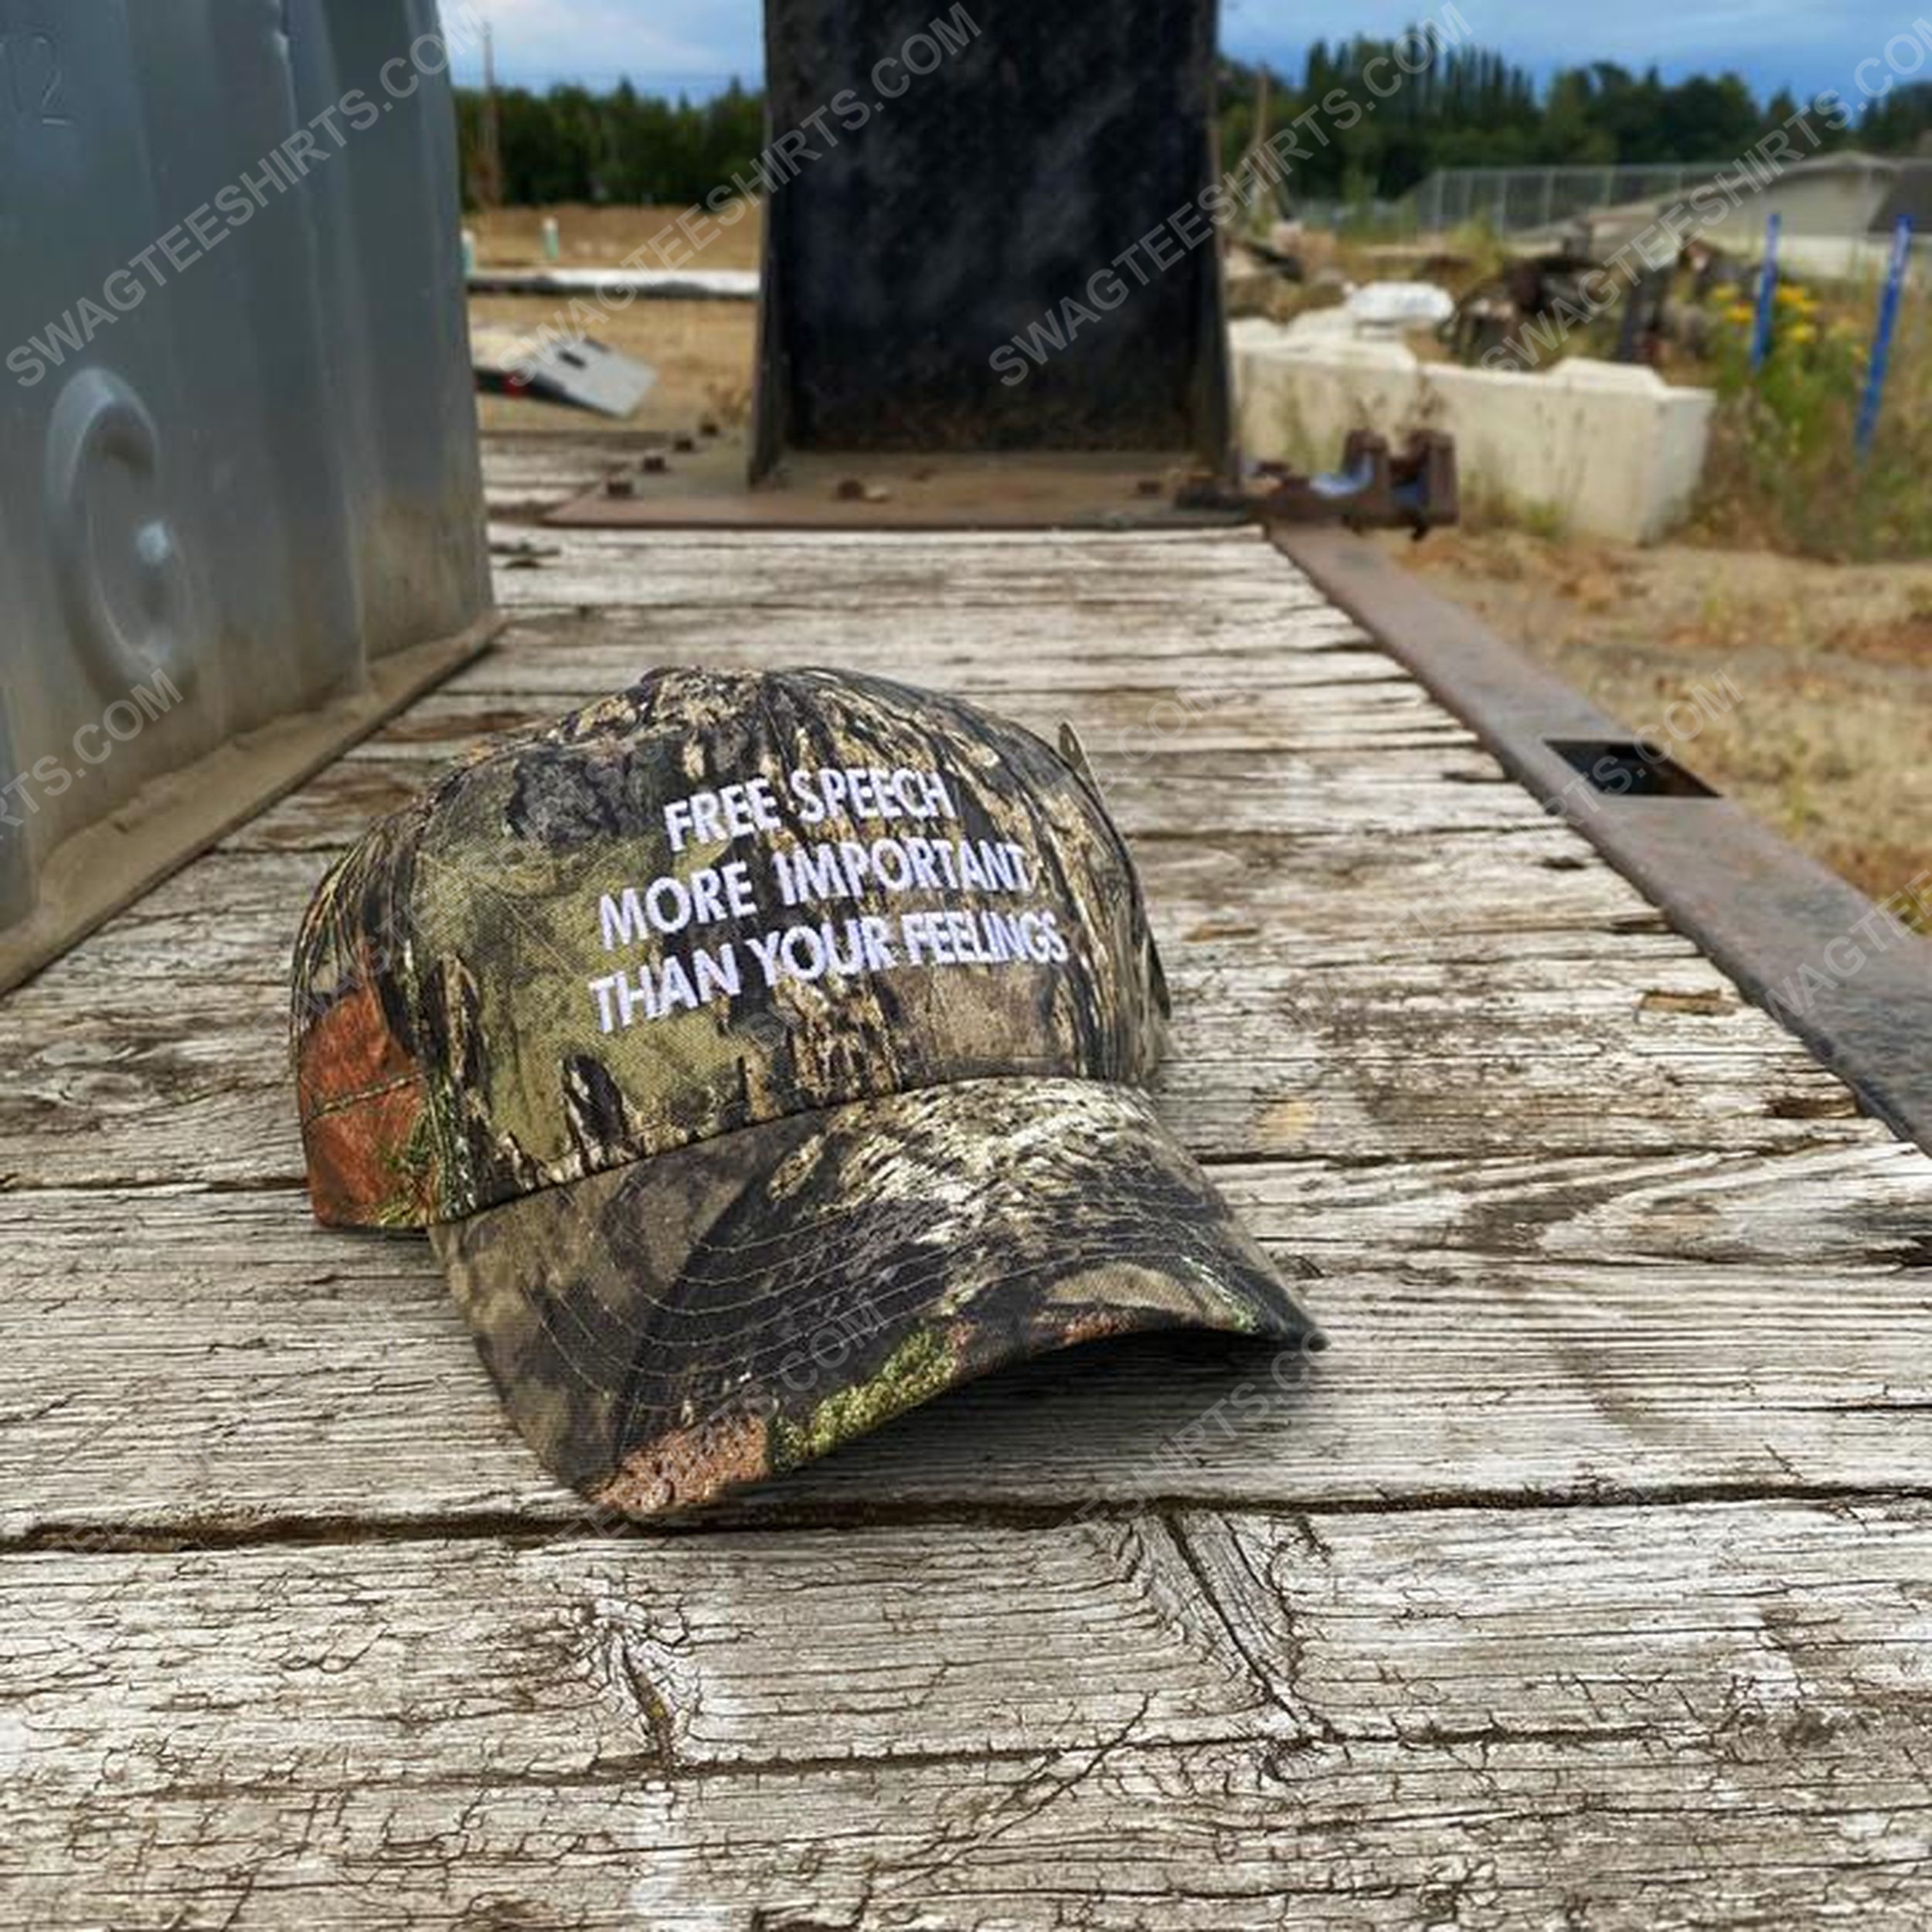 Camo free speech more important than your feelings full print classic hat 1 - Copy (3)